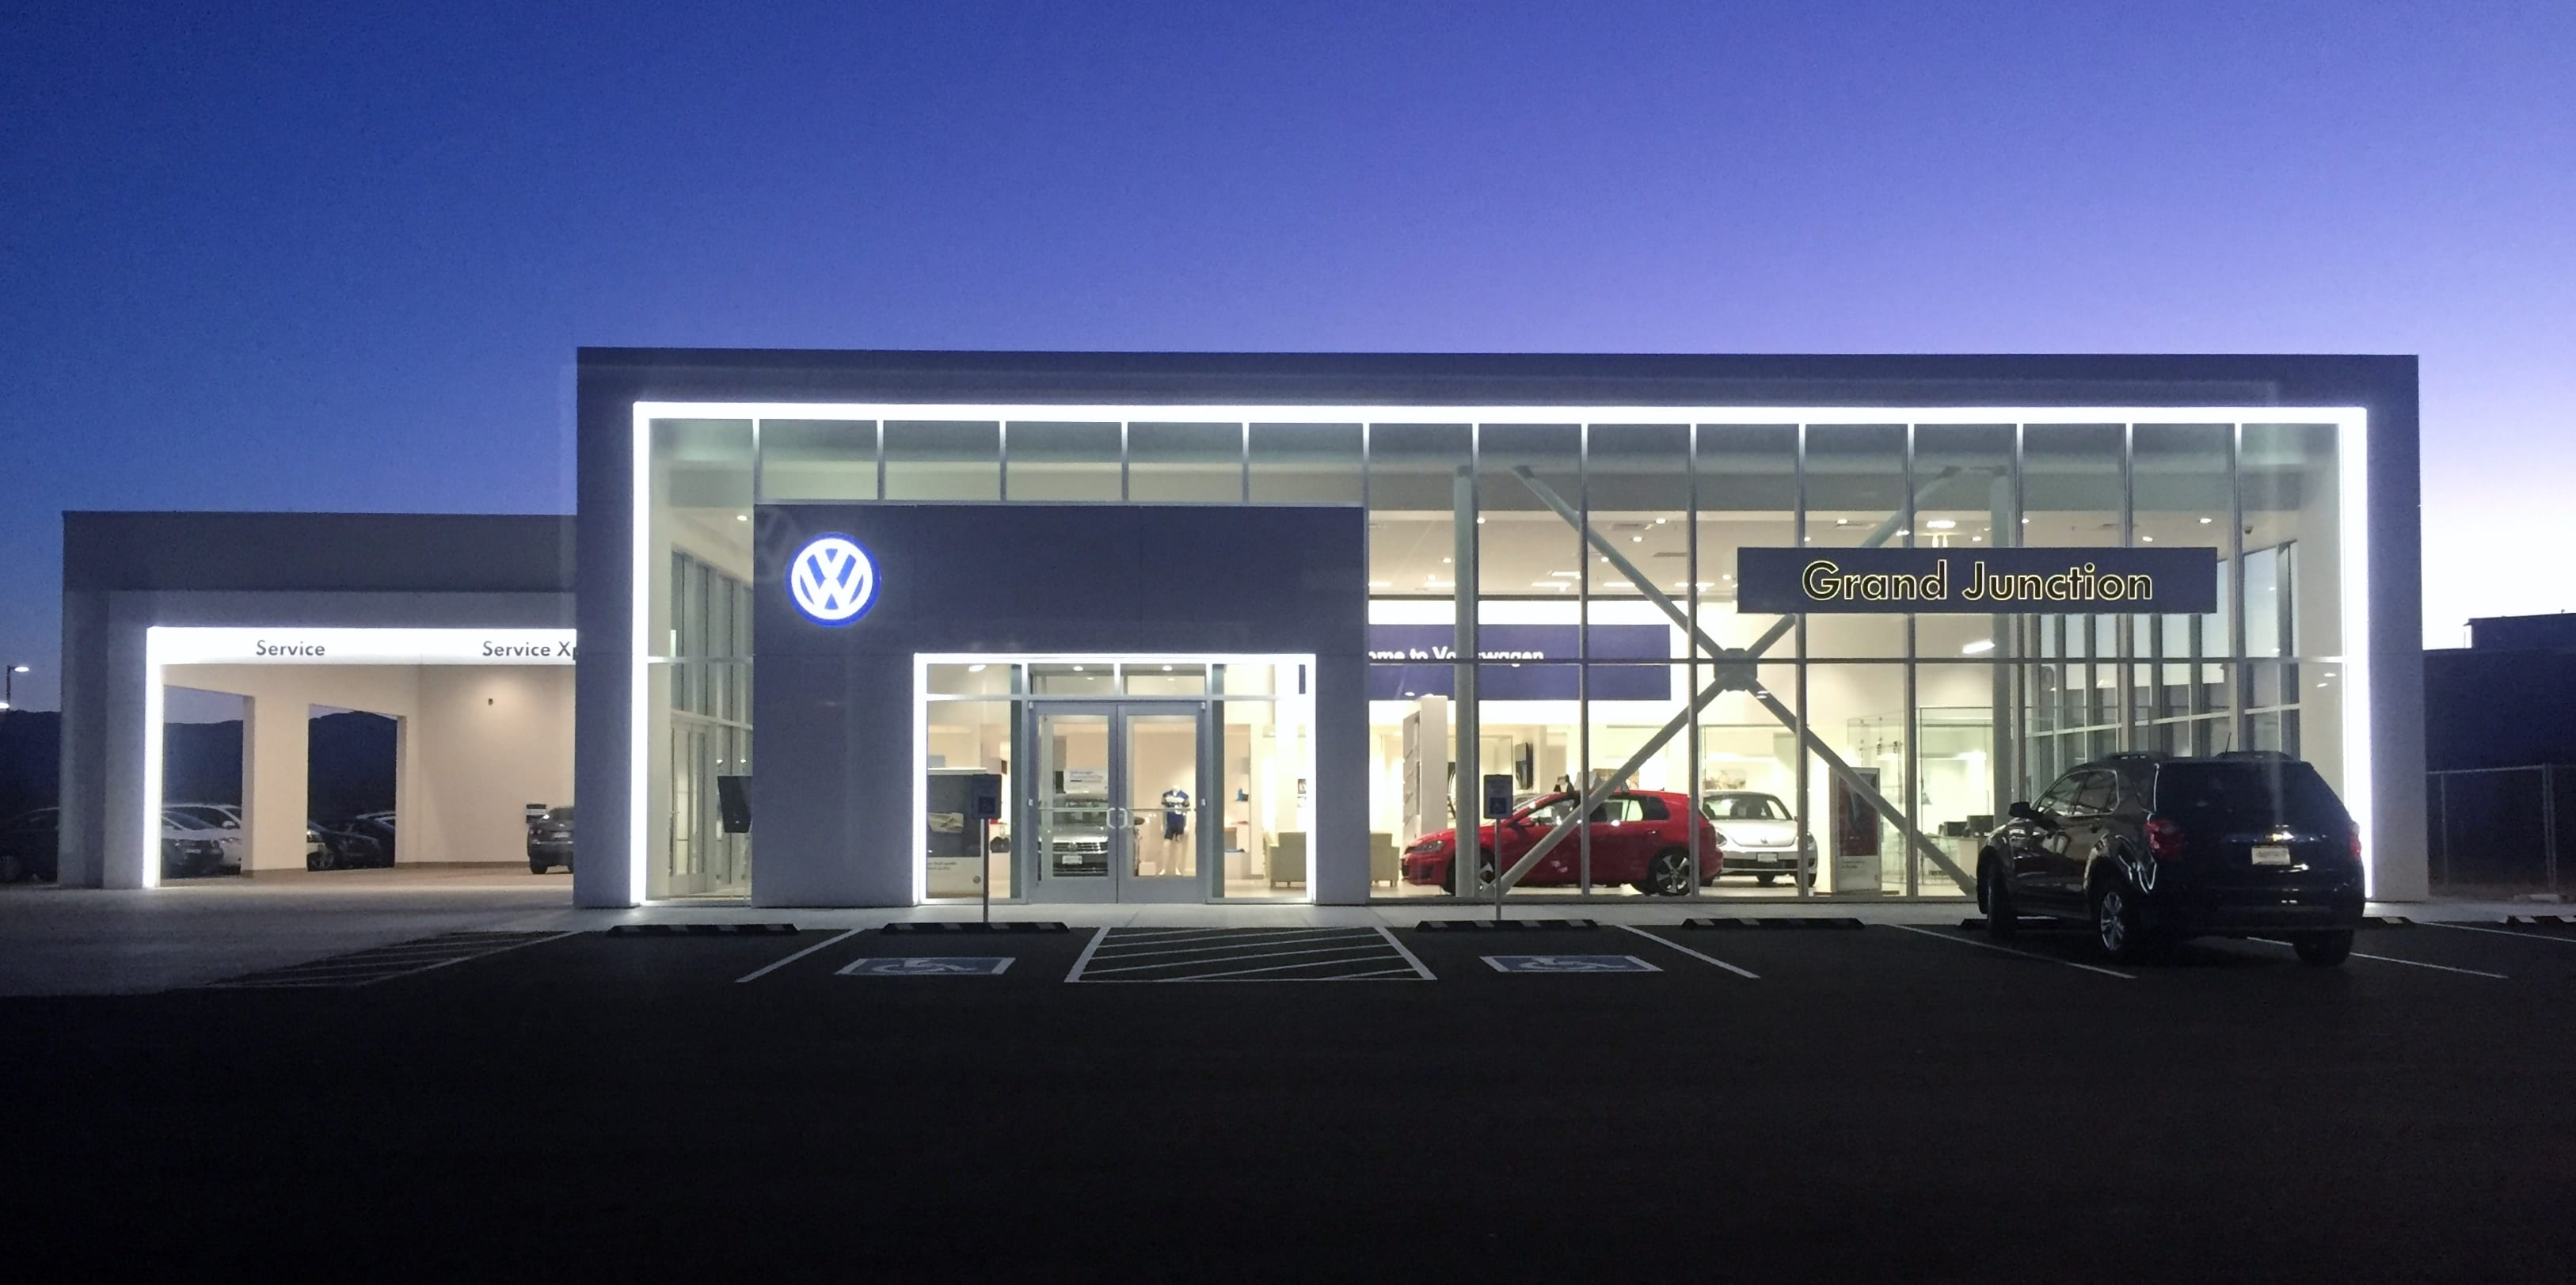 About Grand Junction Volkswagen A Volkswagen Dealership